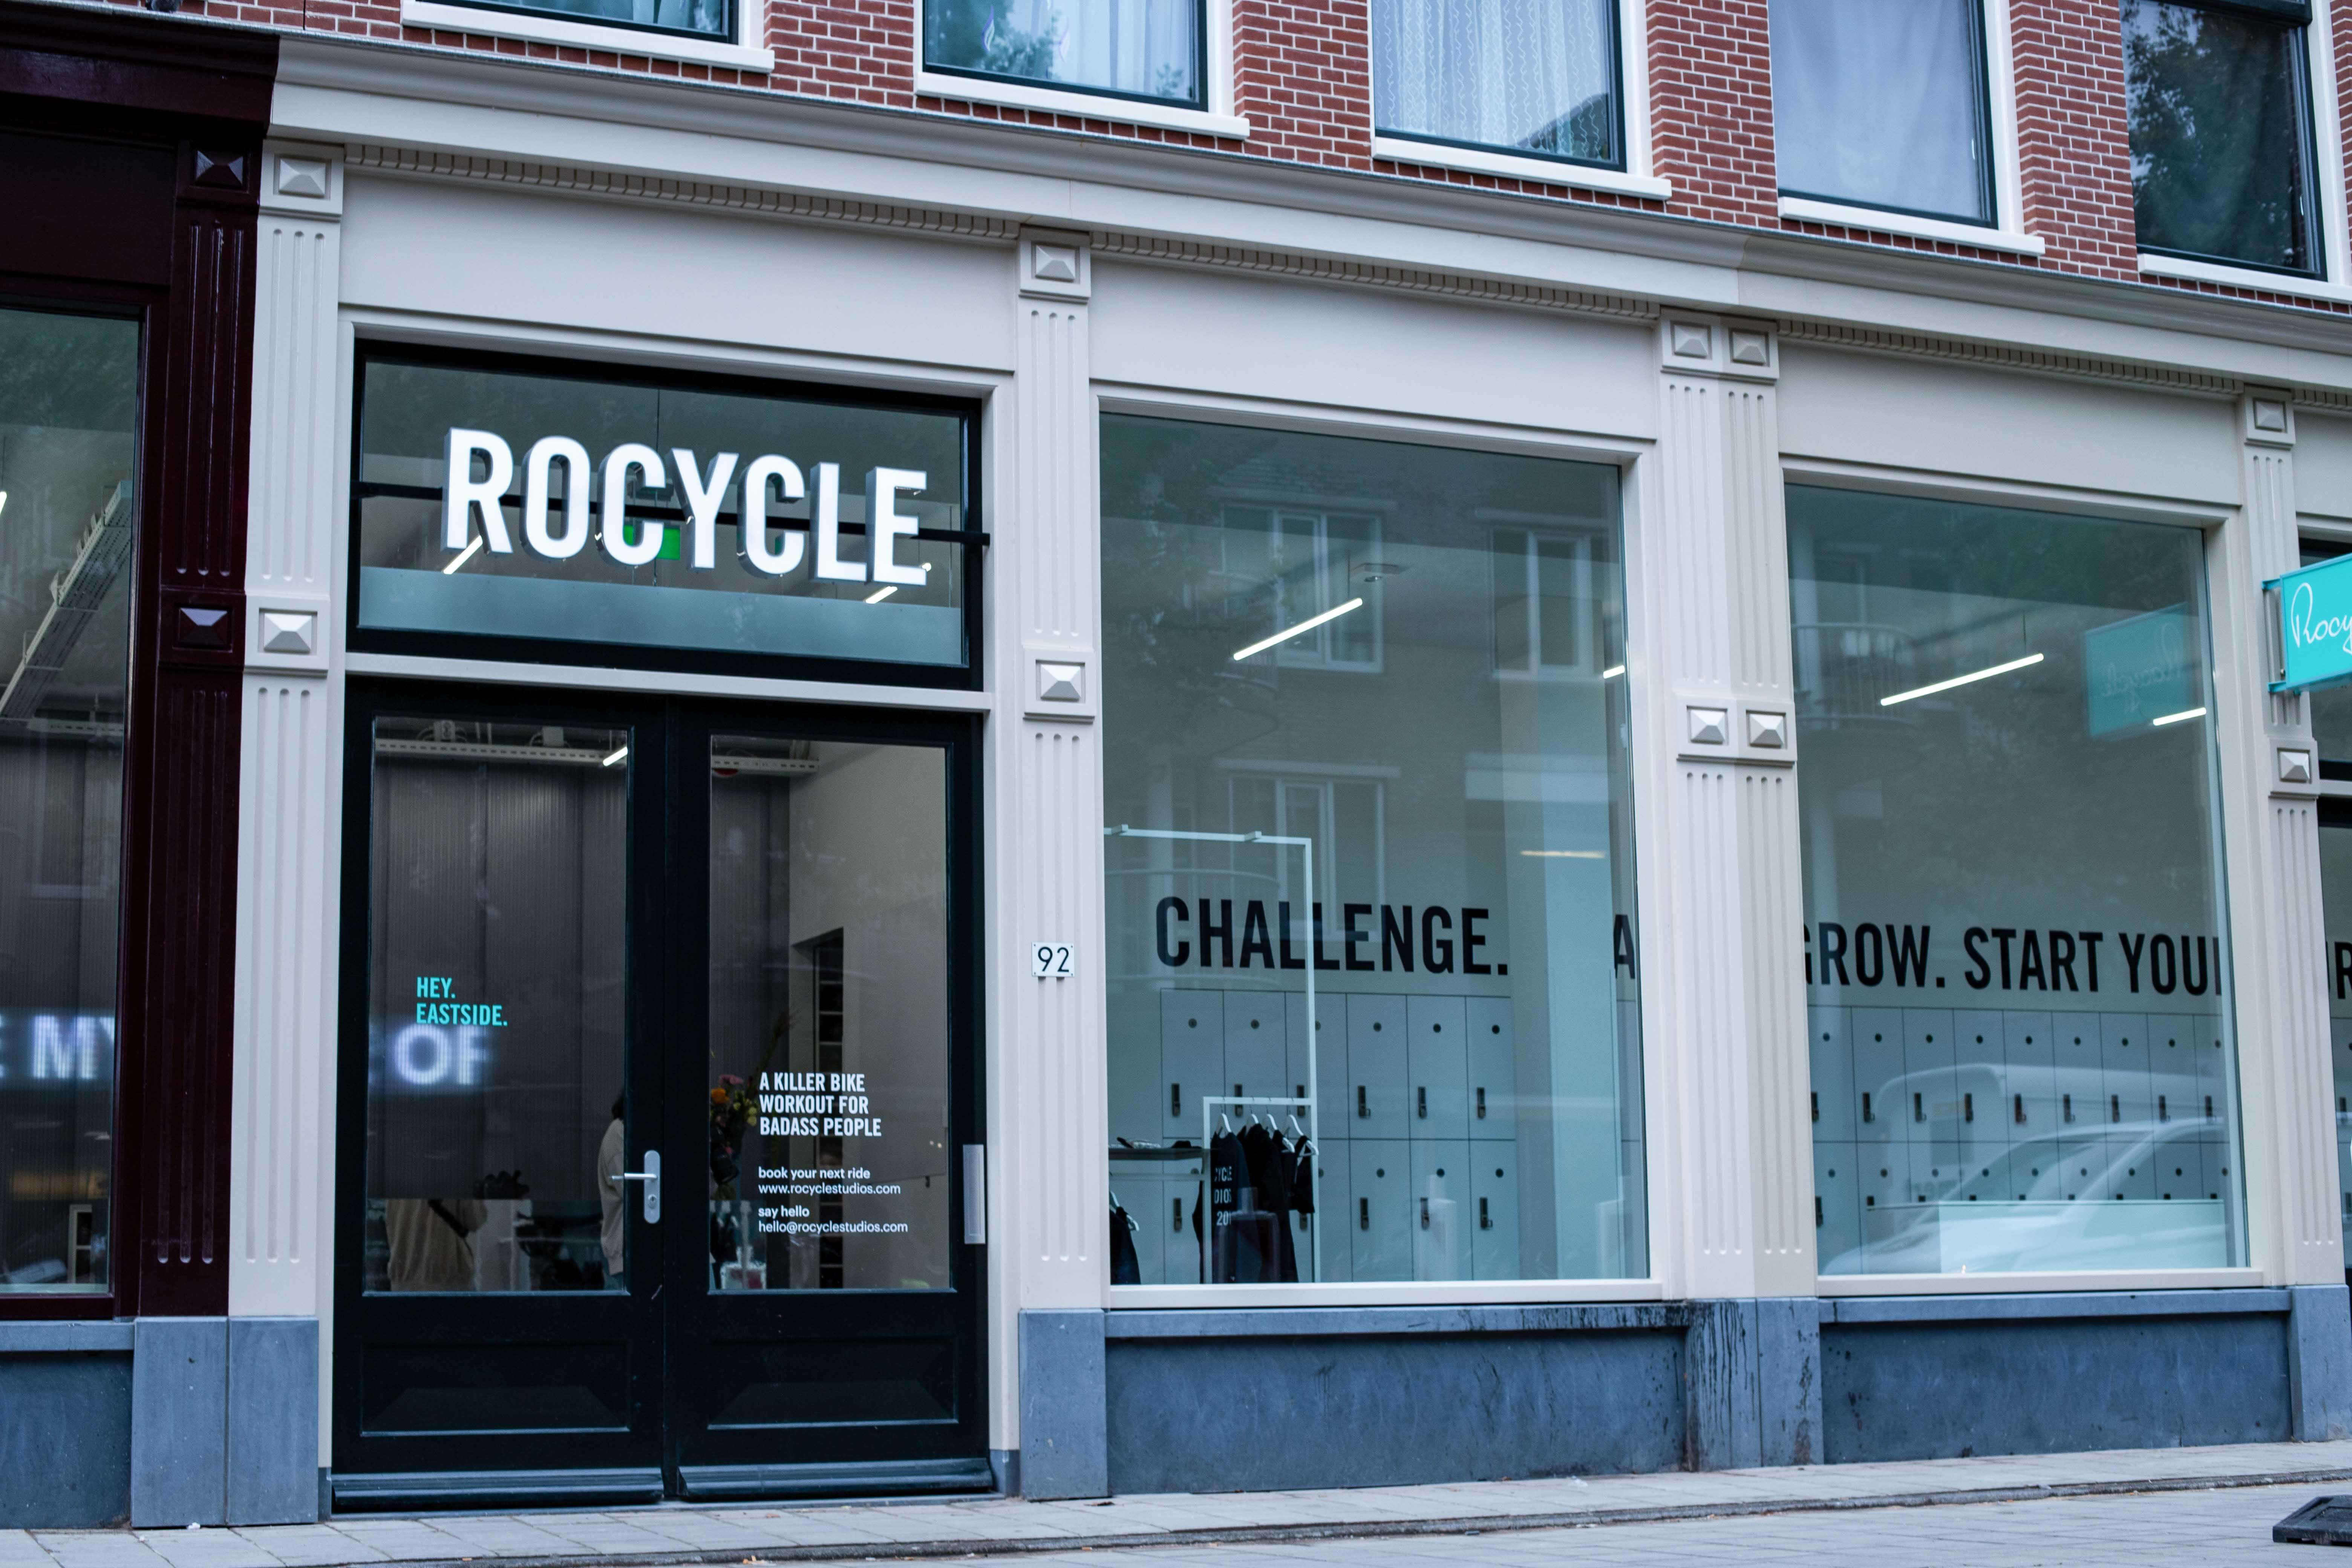 Welcome to Rocycle